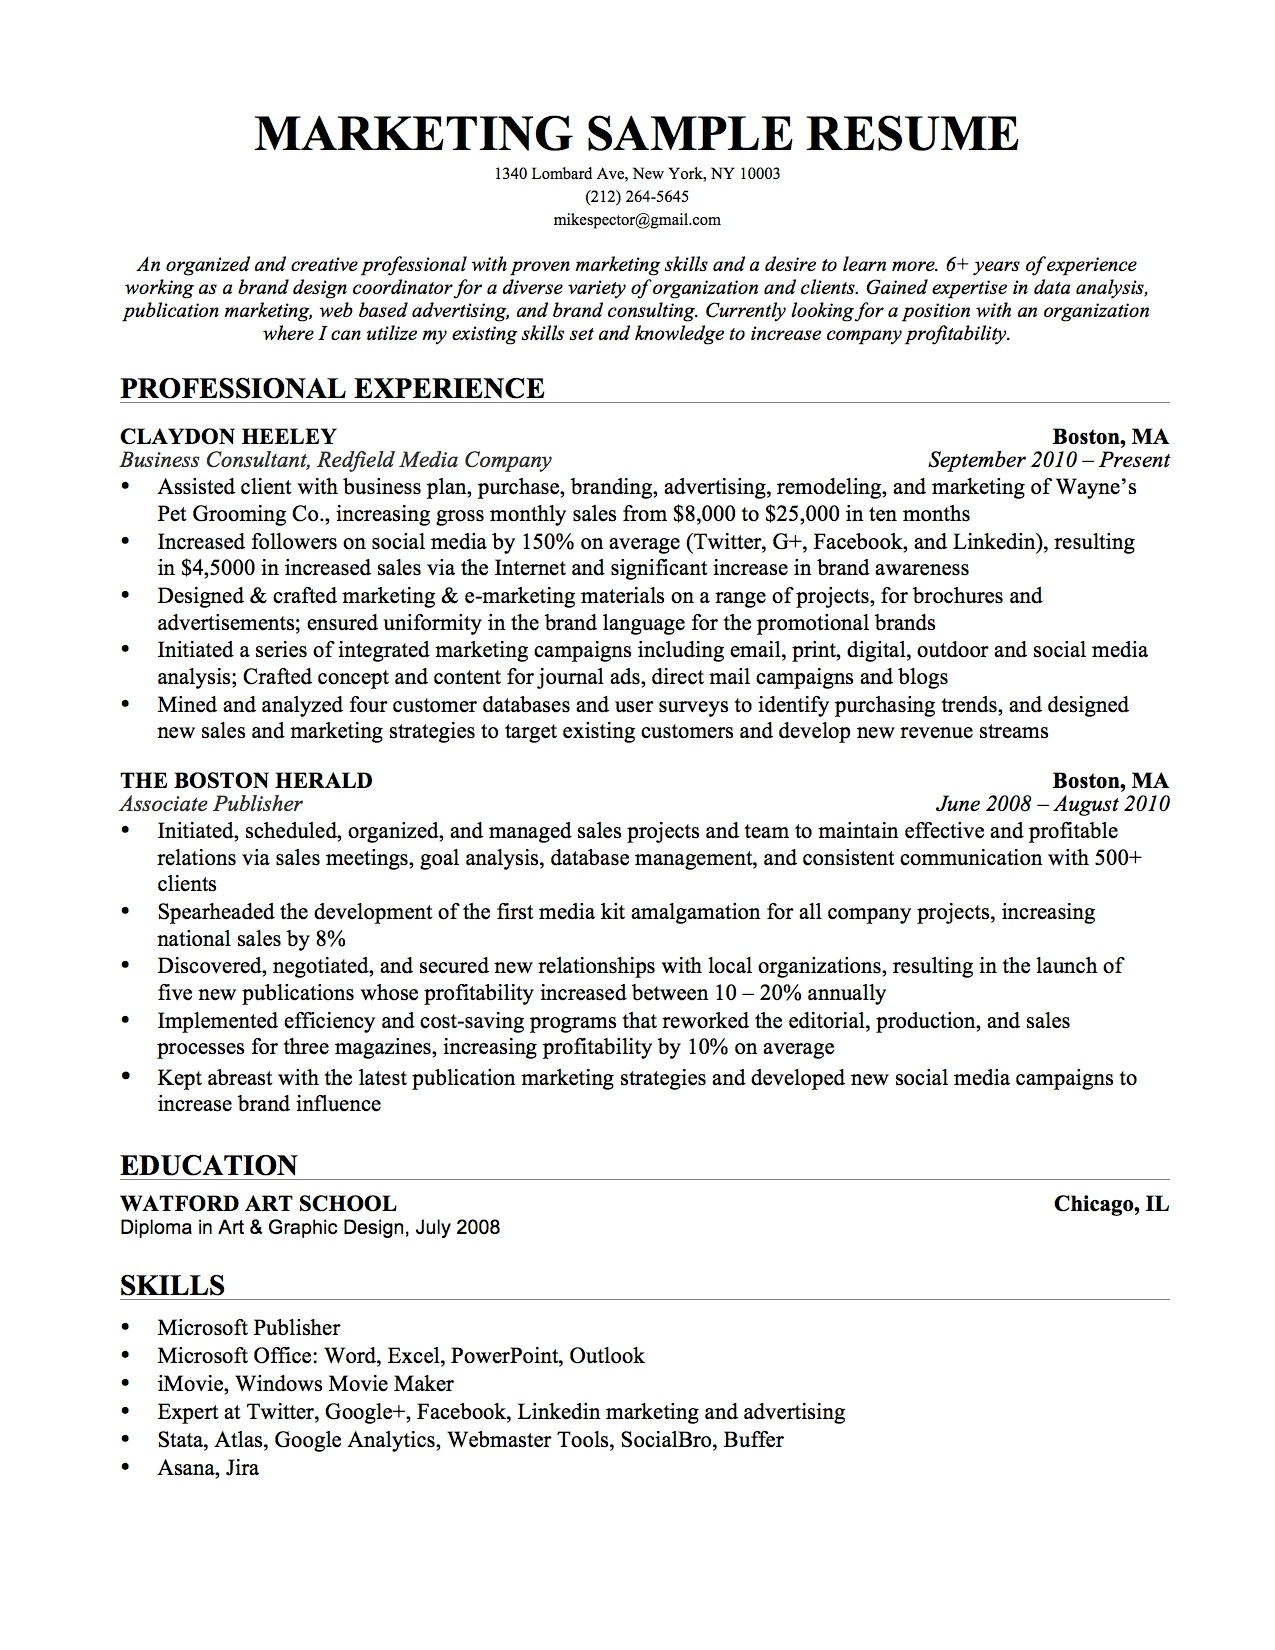 resume examples for public relations resume builder resume examples for public relations public relations executive resume example sample marketing resume examples